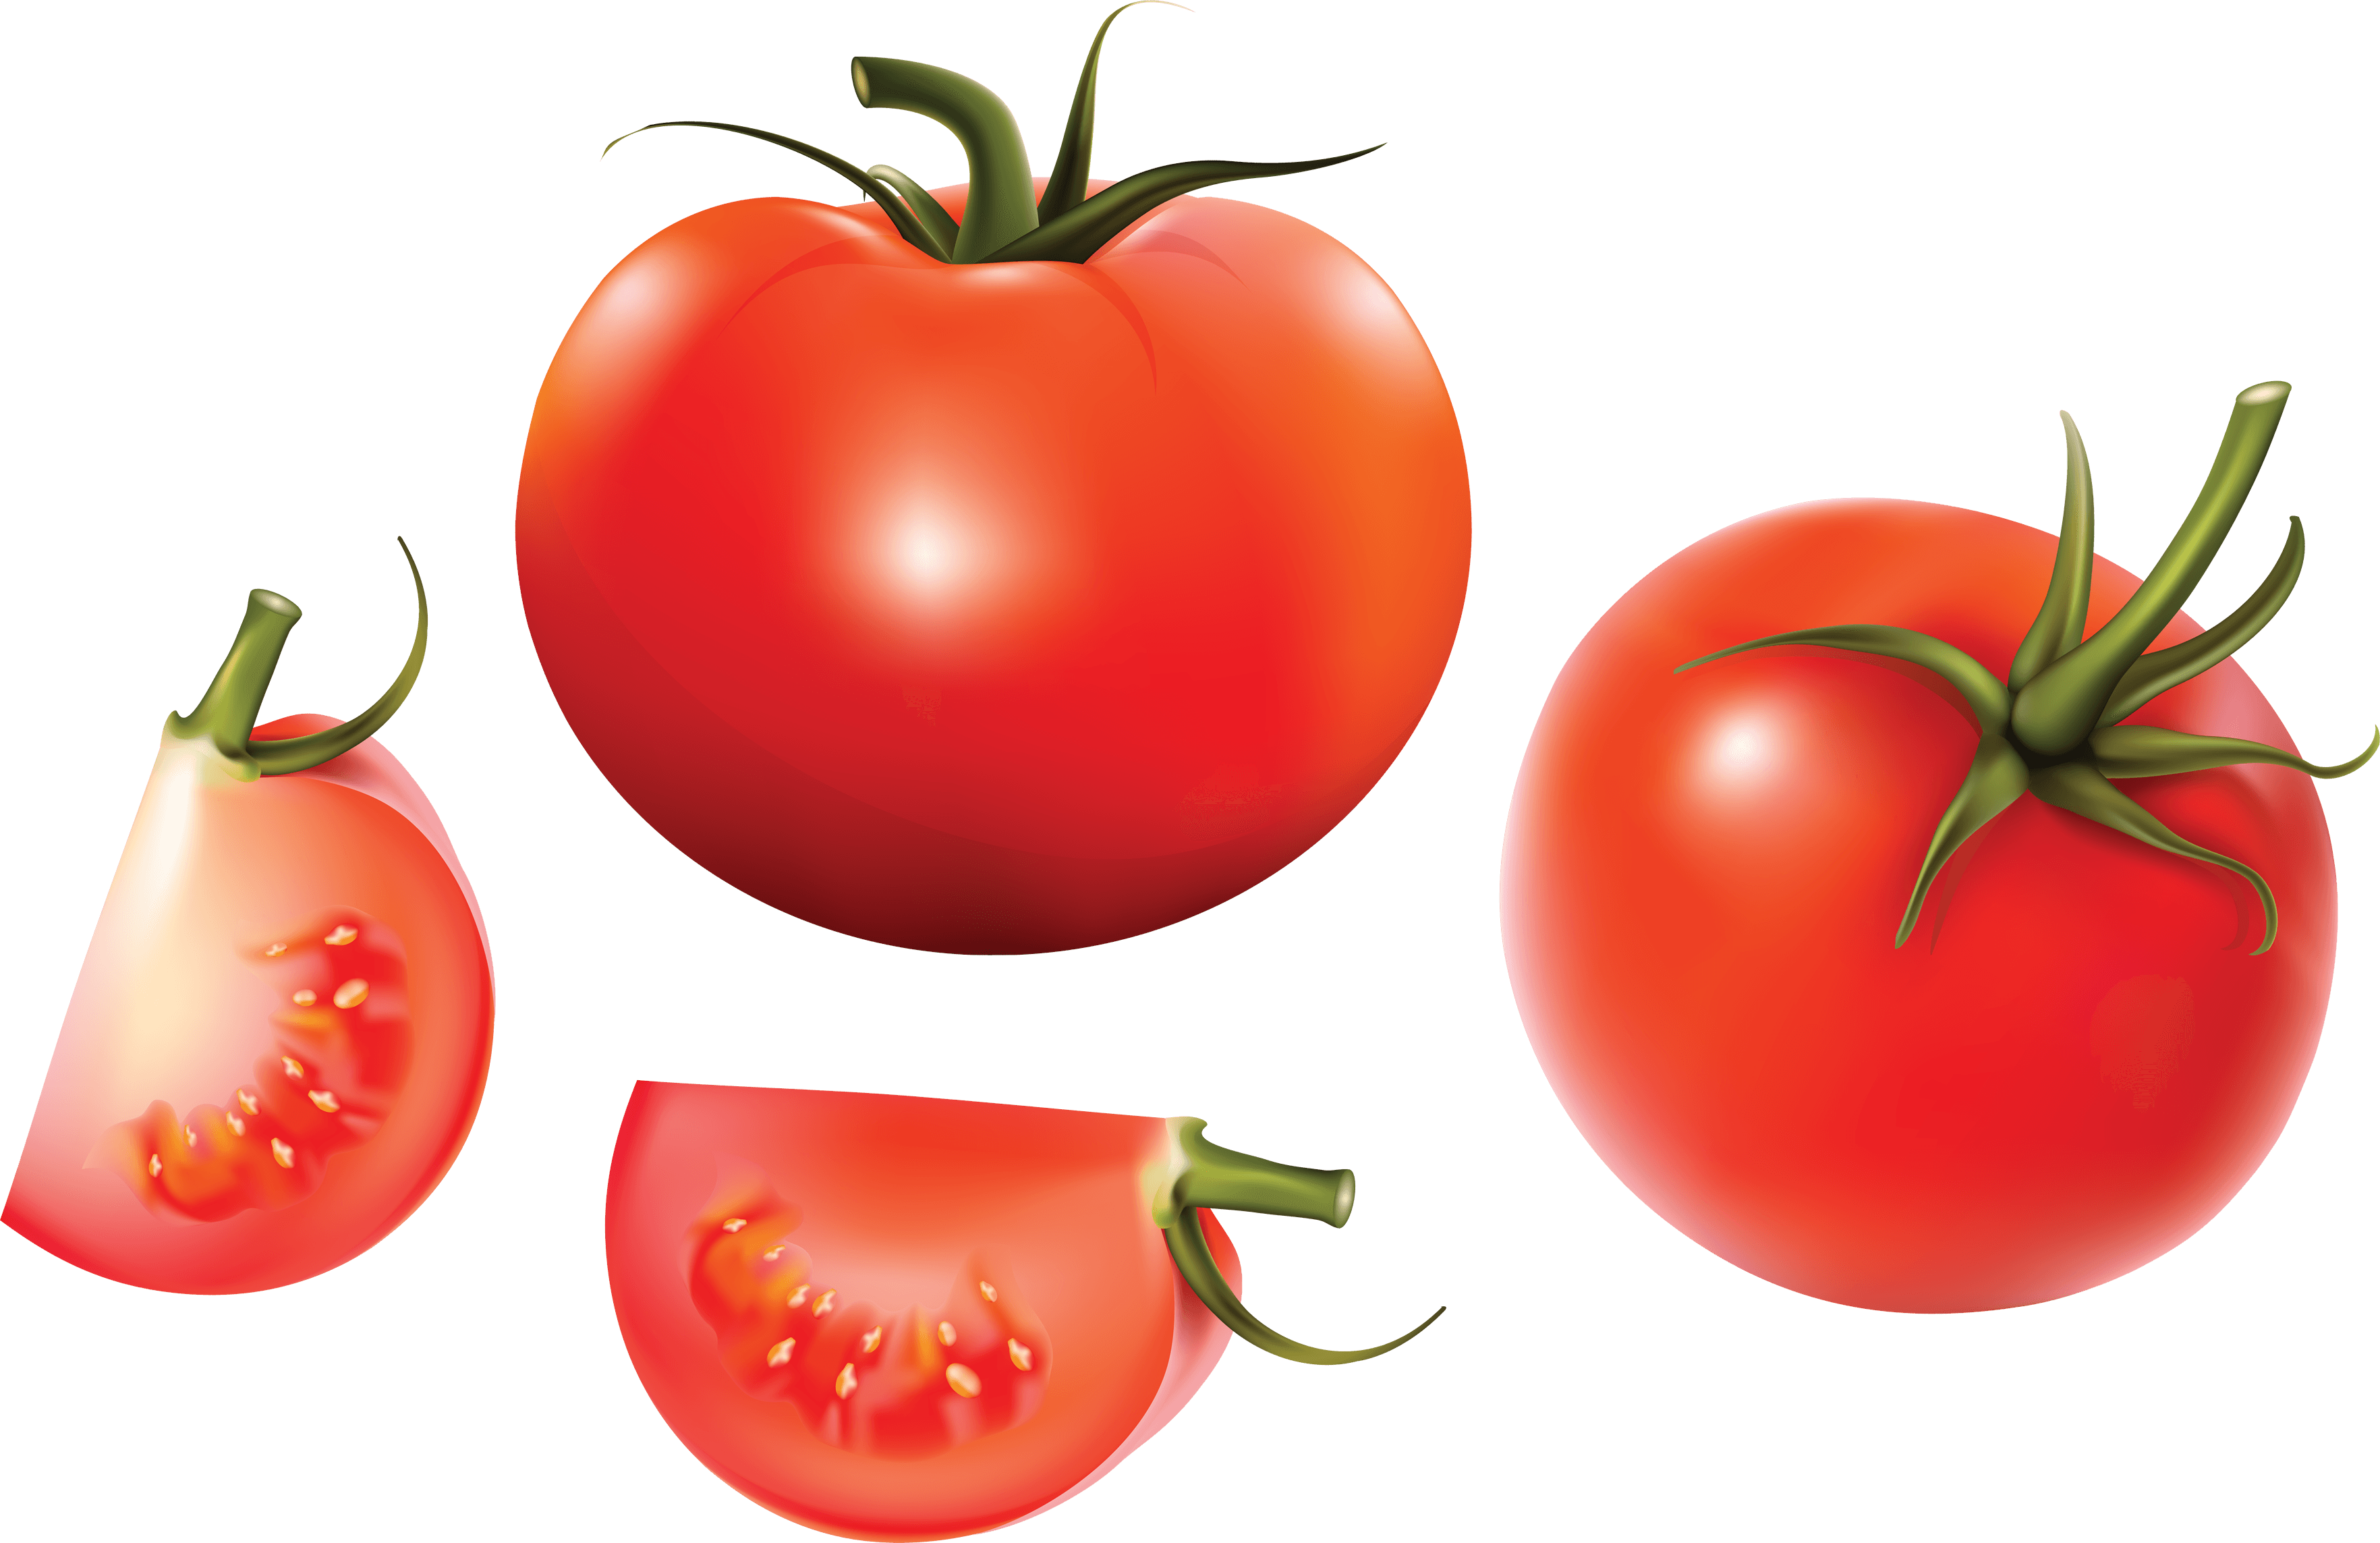 Splatter clipart tomato Image and Tomato Image images